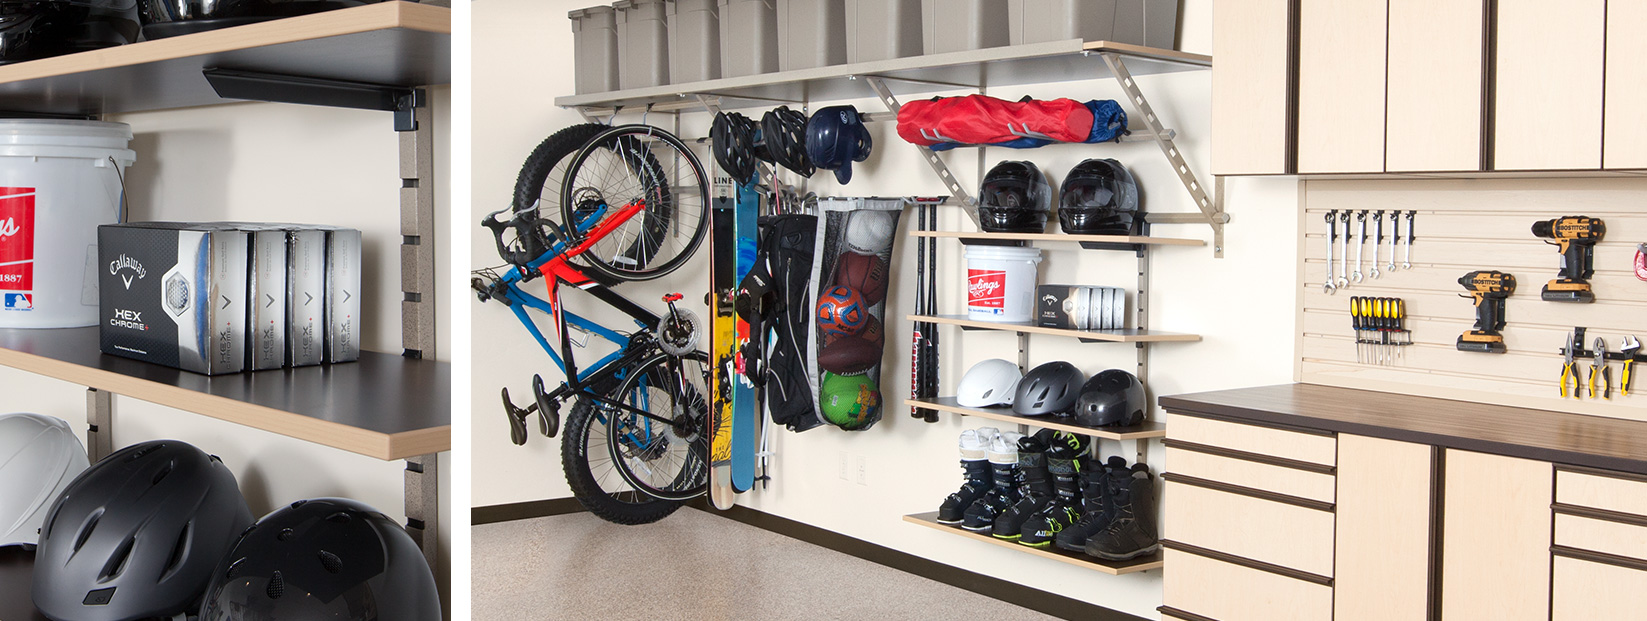 Garage Shelving System Cincinnati